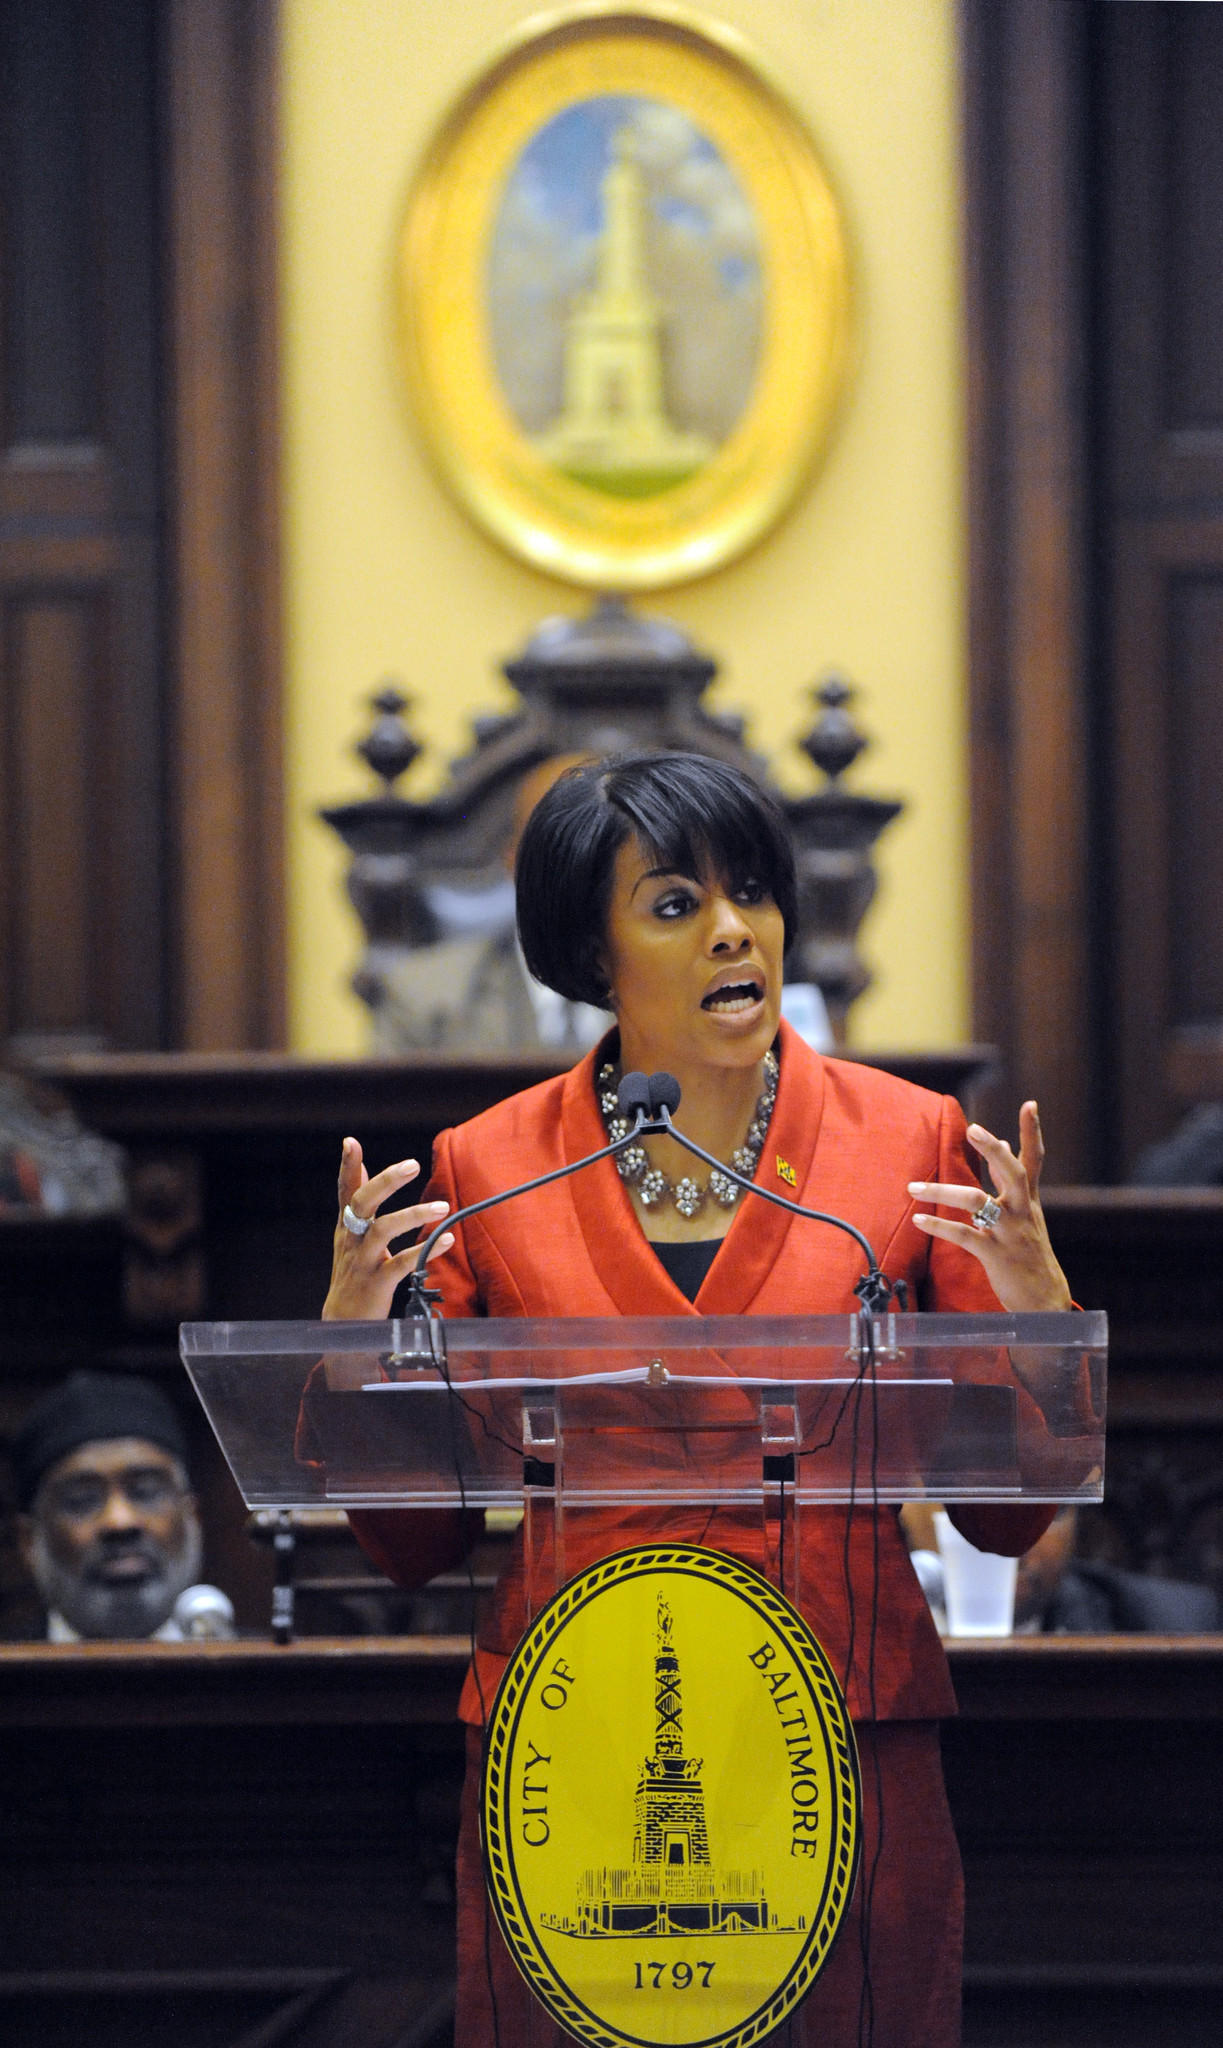 Mayor Stephanie Rawlings-Blake gives the State of the City speech at City Hall.